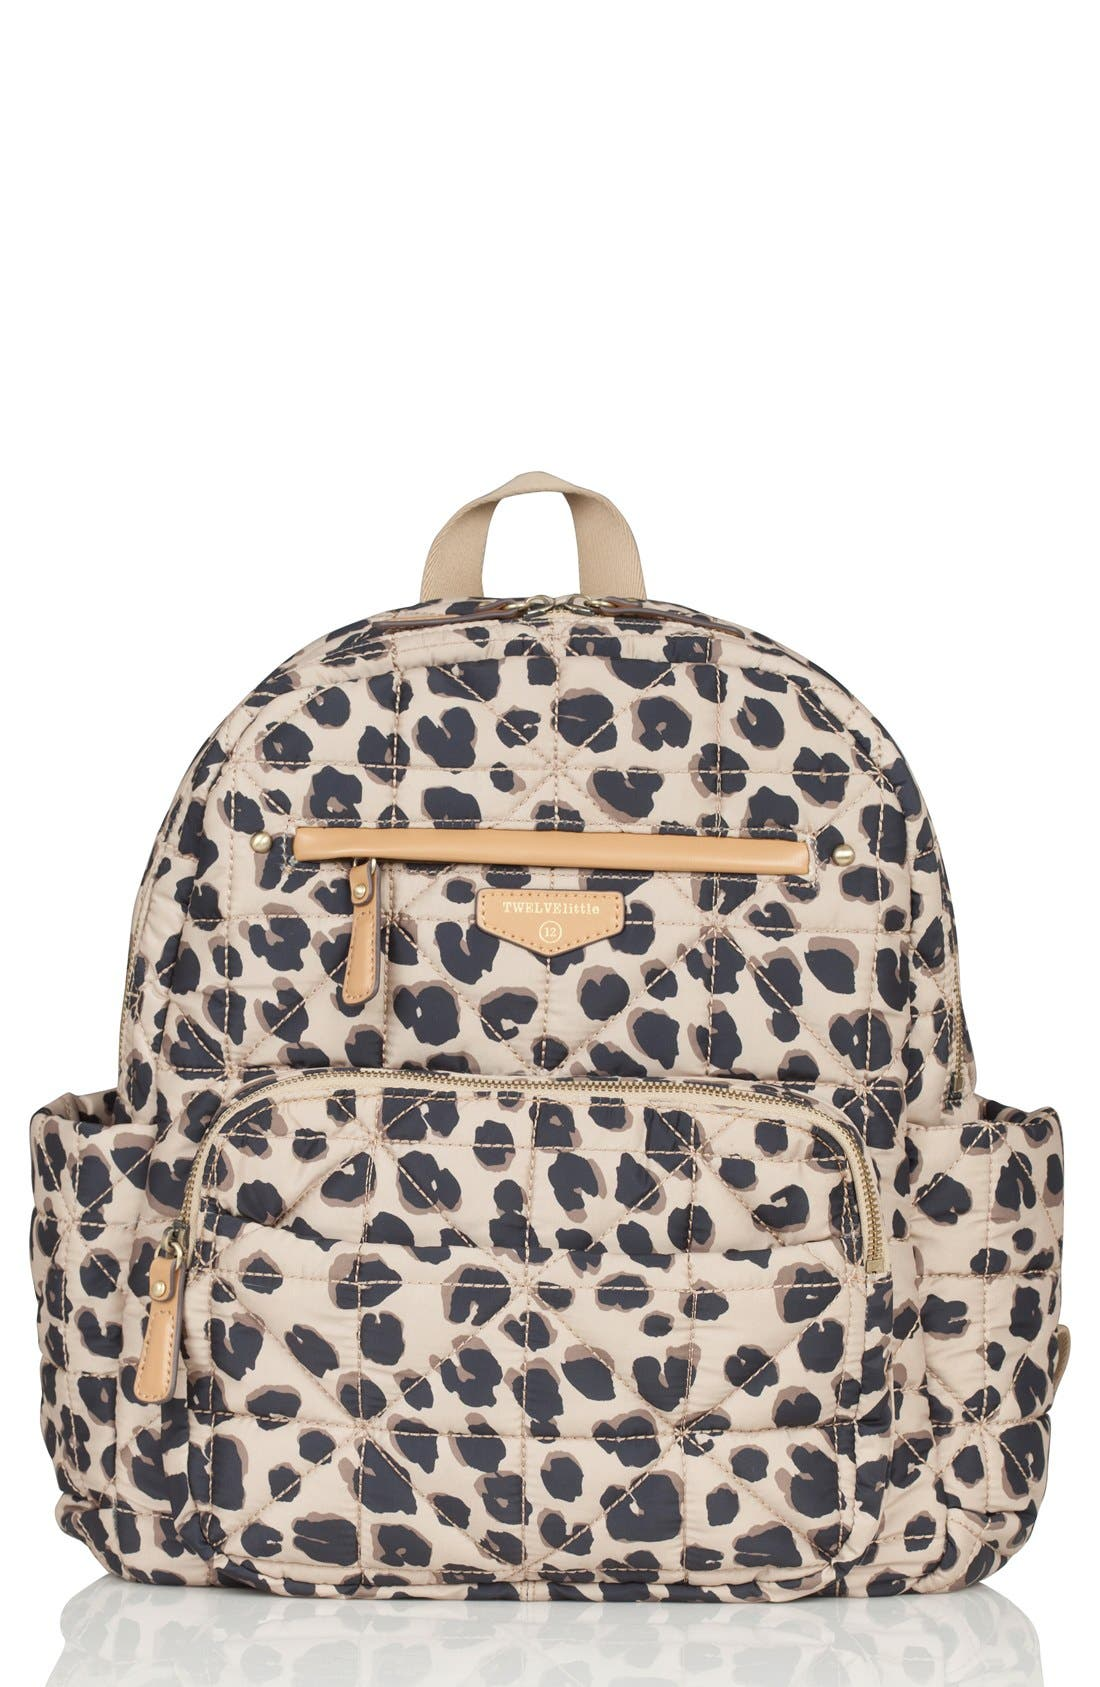 Quilted Water Resistant Nylon Diaper Backpack,                         Main,                         color, LEOPARD PRINT